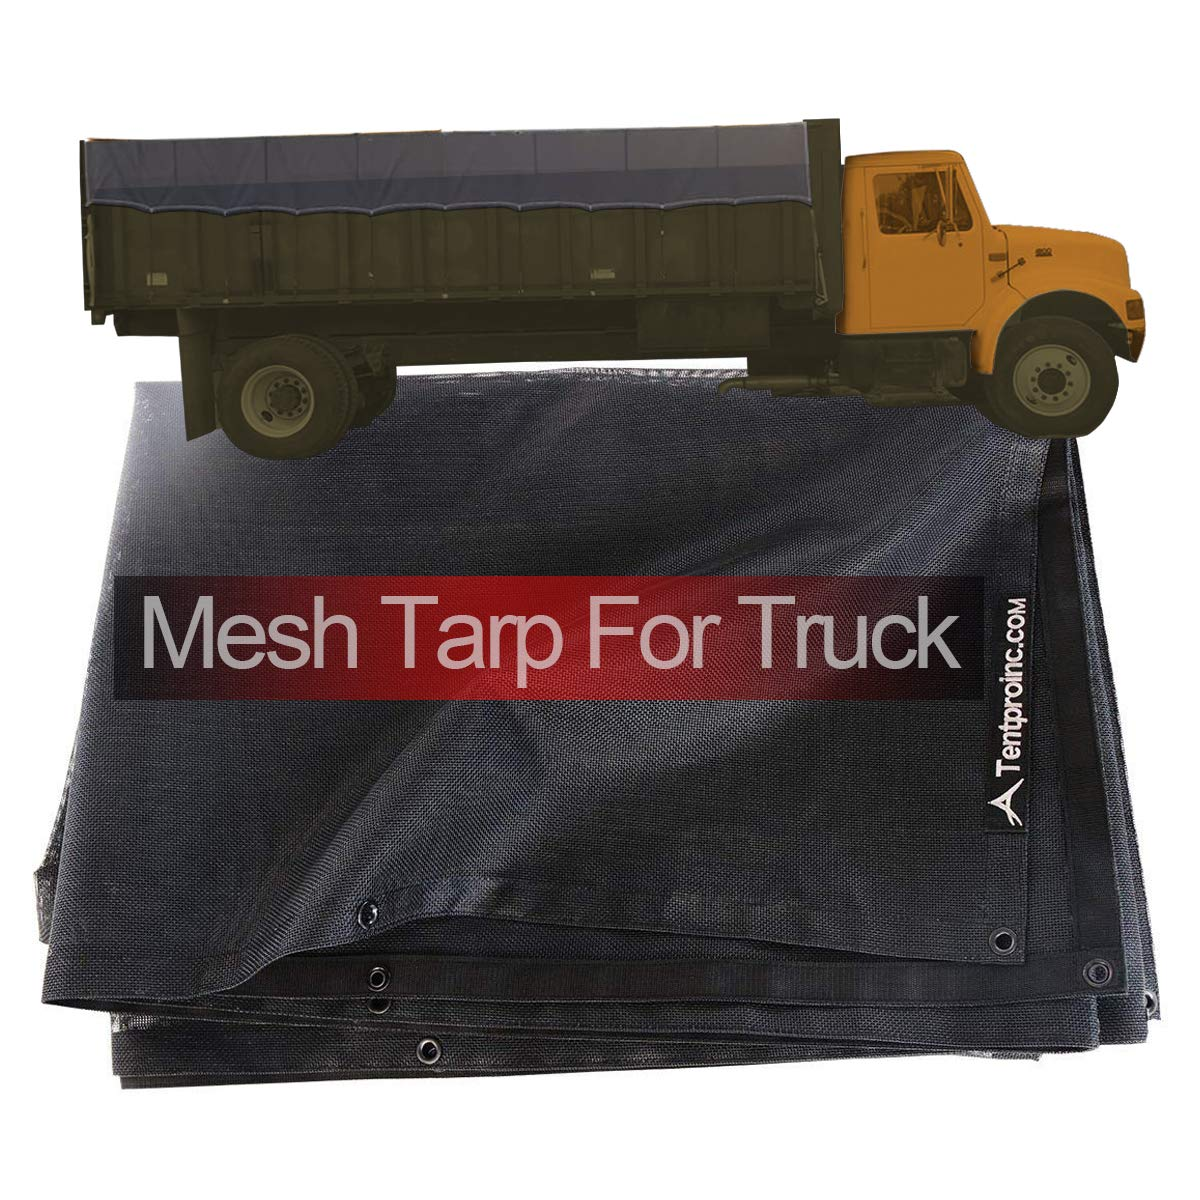 Truck Mesh Tarp 10'X15' (Black) Tentproinc Heavy Duty Cover Top Quality Reinforced Double Needle Stitch Webbing Ripping and Tearing Stop, No Rust Thicker Brass Grommets - 3 Years Limited Warranty by Tentproinc